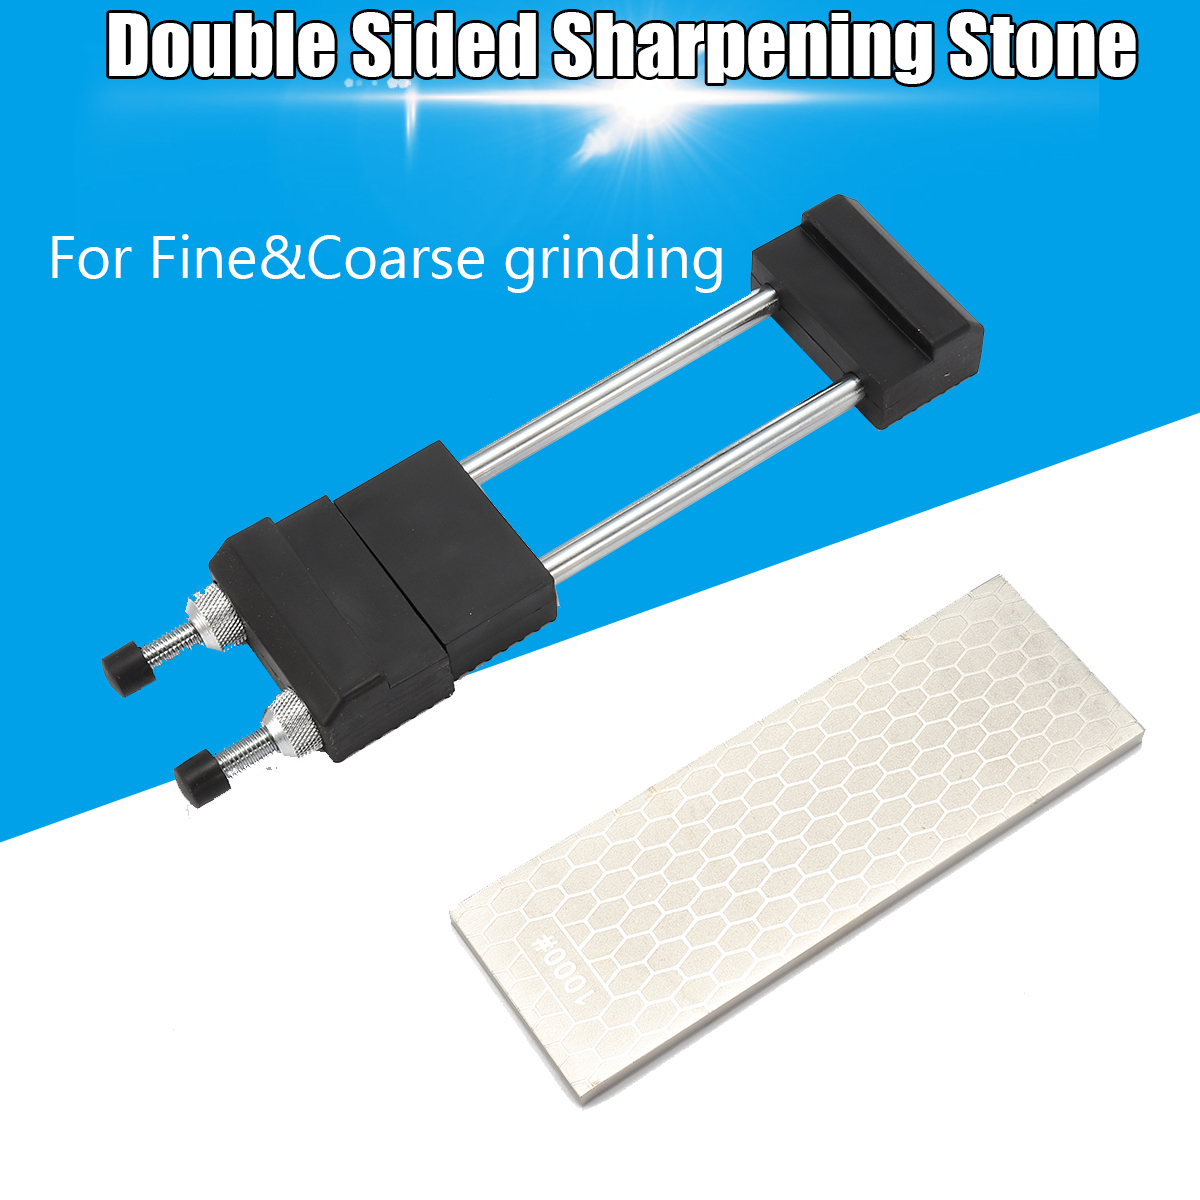 Diamond Sharpen Stone Whetstone Sharpener Waterstone Sharpening Kit Set With 1200 Ice Bear Stone